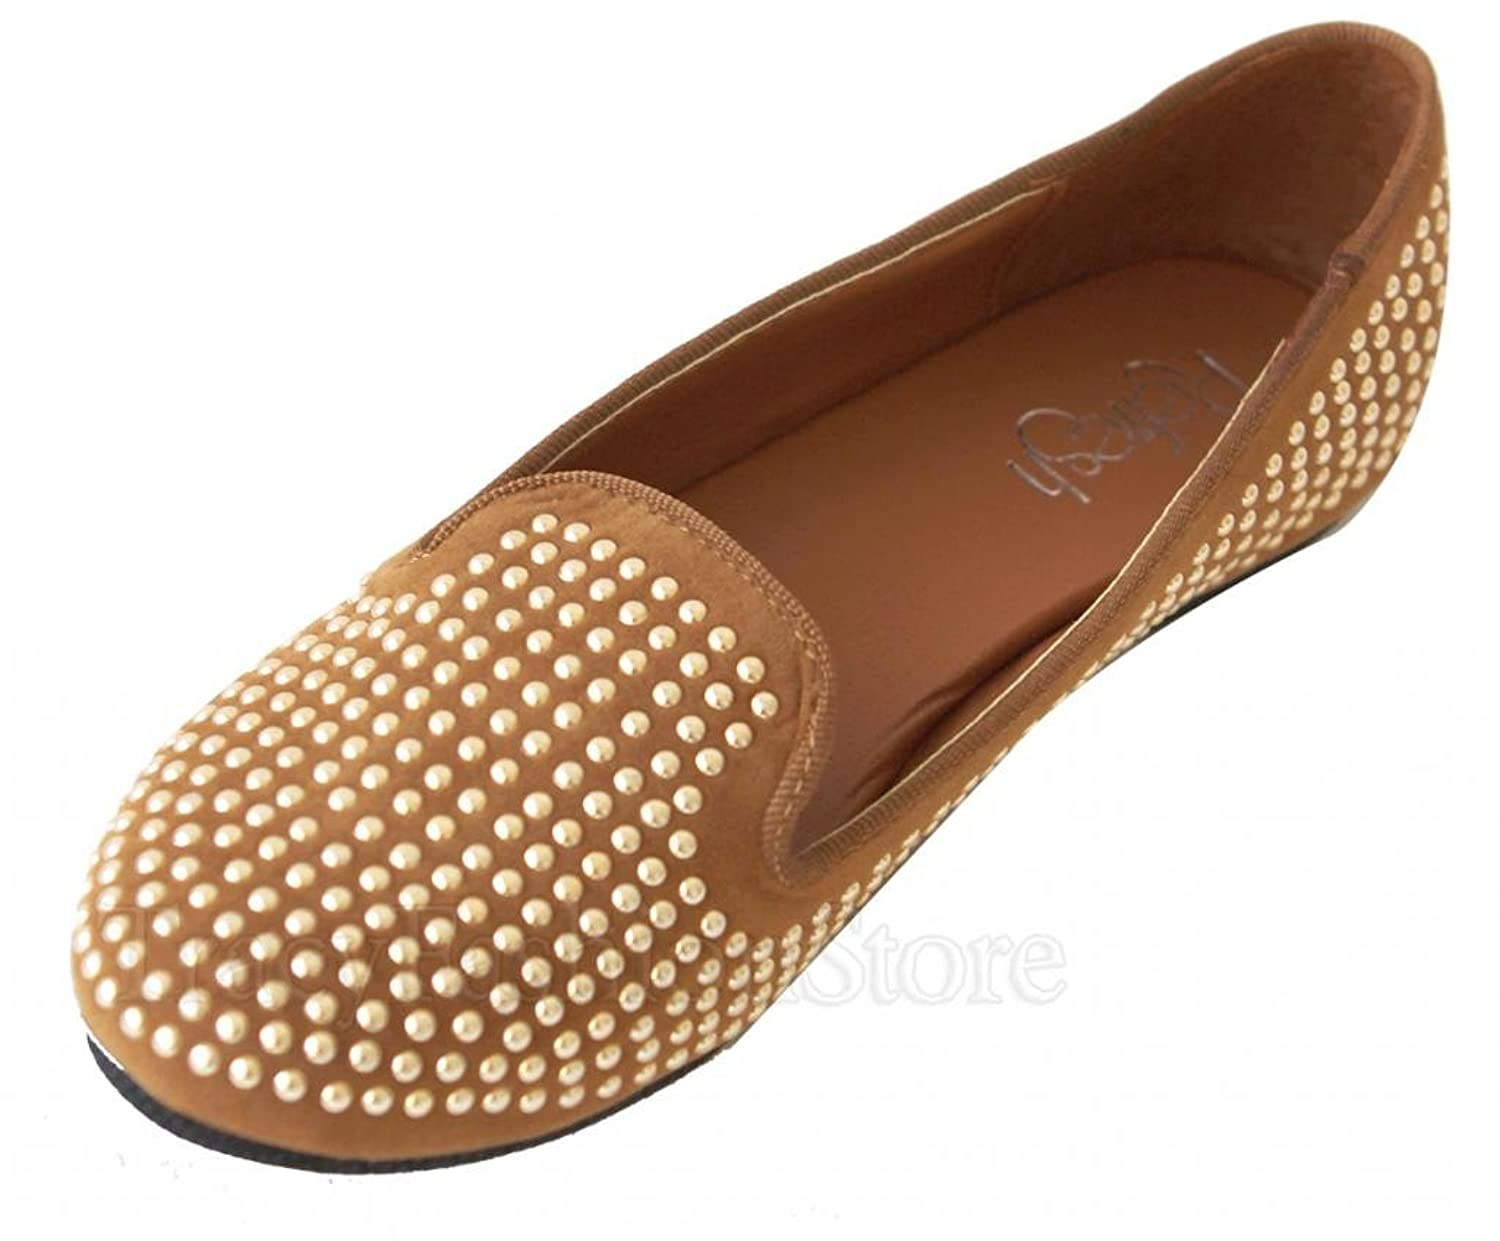 Refresh Benin-09 slip on flat boat loafer suede with rounded silver pearl rivets shoes